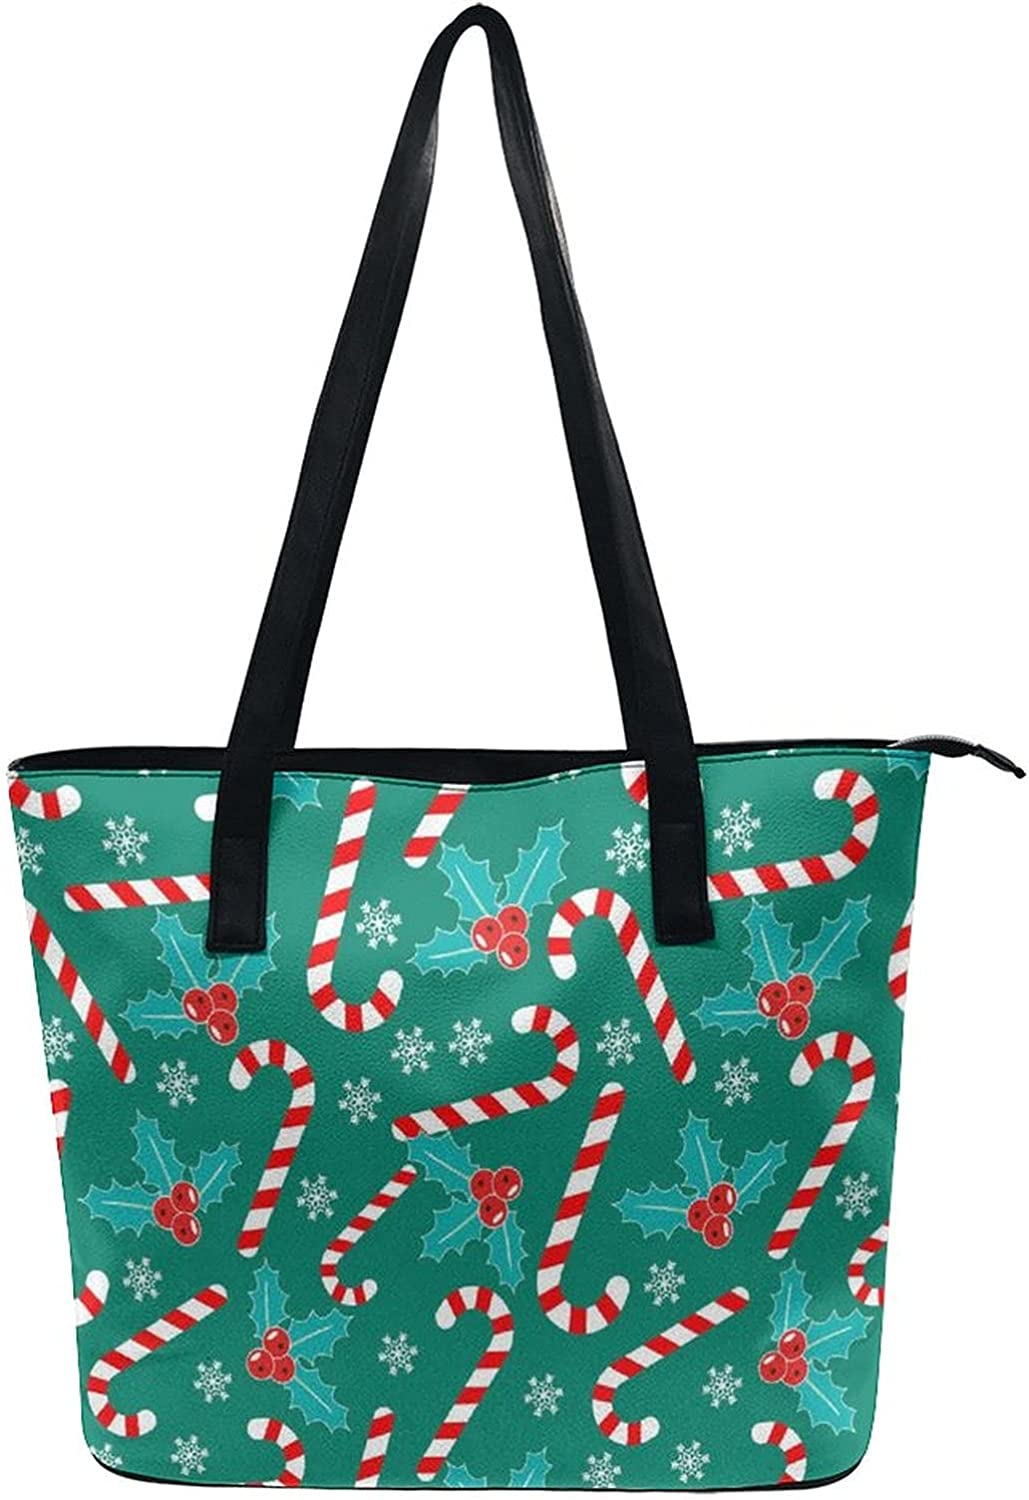 Beach Tote Bags Tulsa Mall Satchel Shoulder Bag Lady For Convenient B Mail order cheap Women